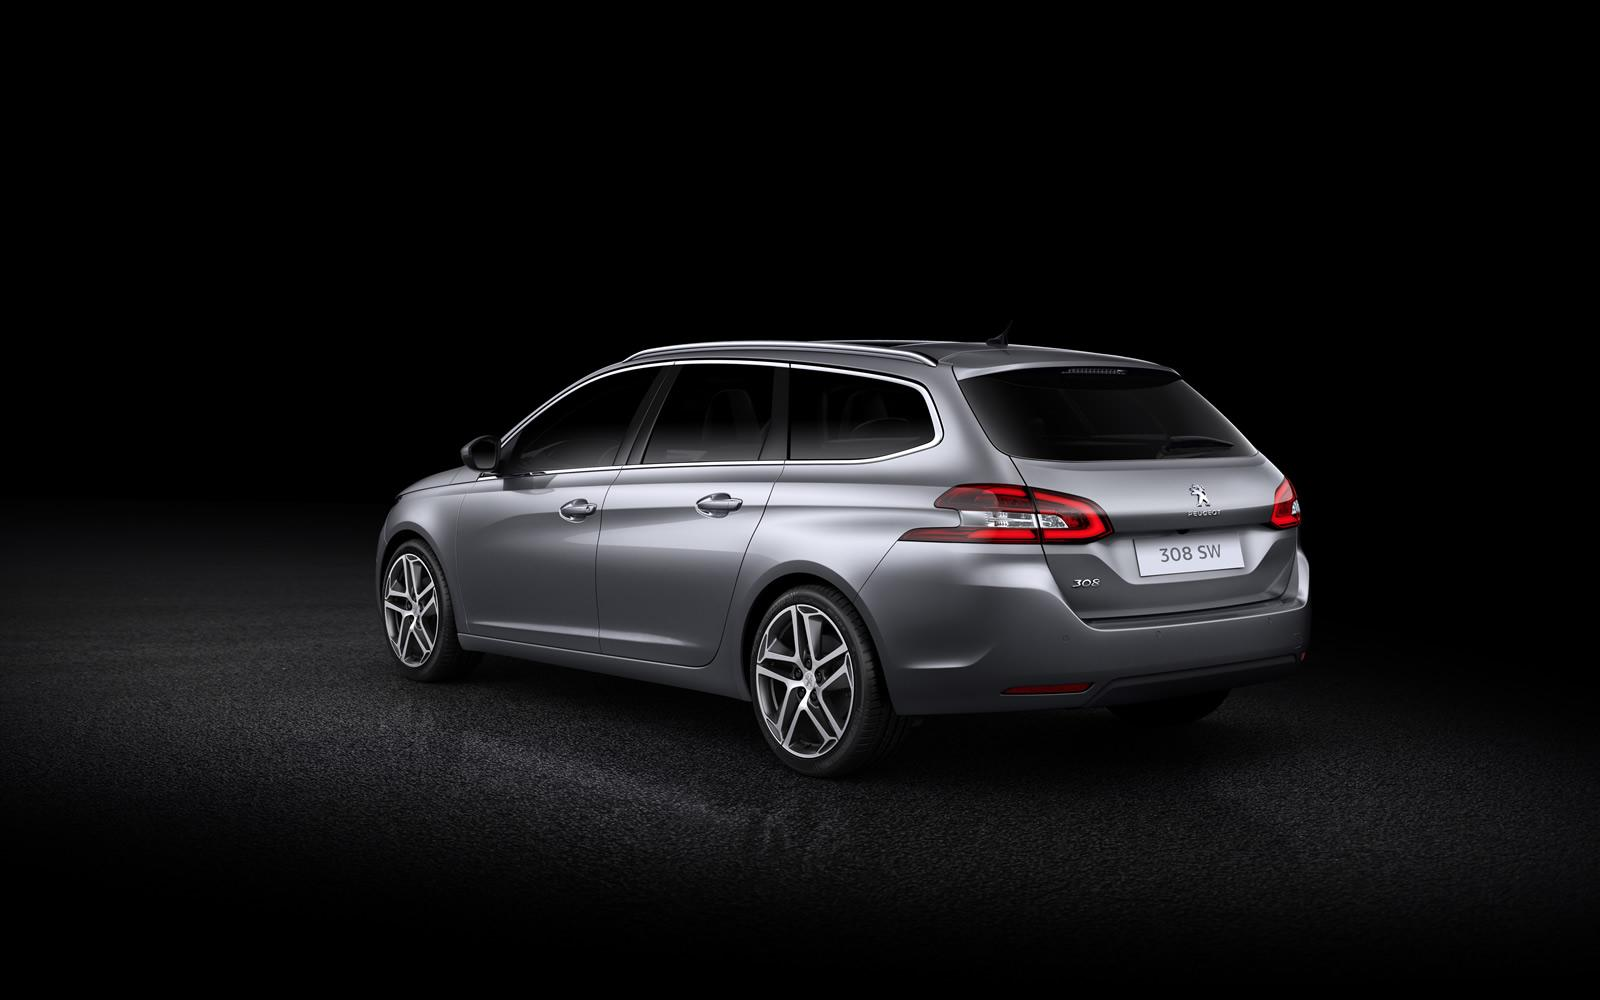 peugeot 308 sw revealed with 610 liters of cargo space. Black Bedroom Furniture Sets. Home Design Ideas